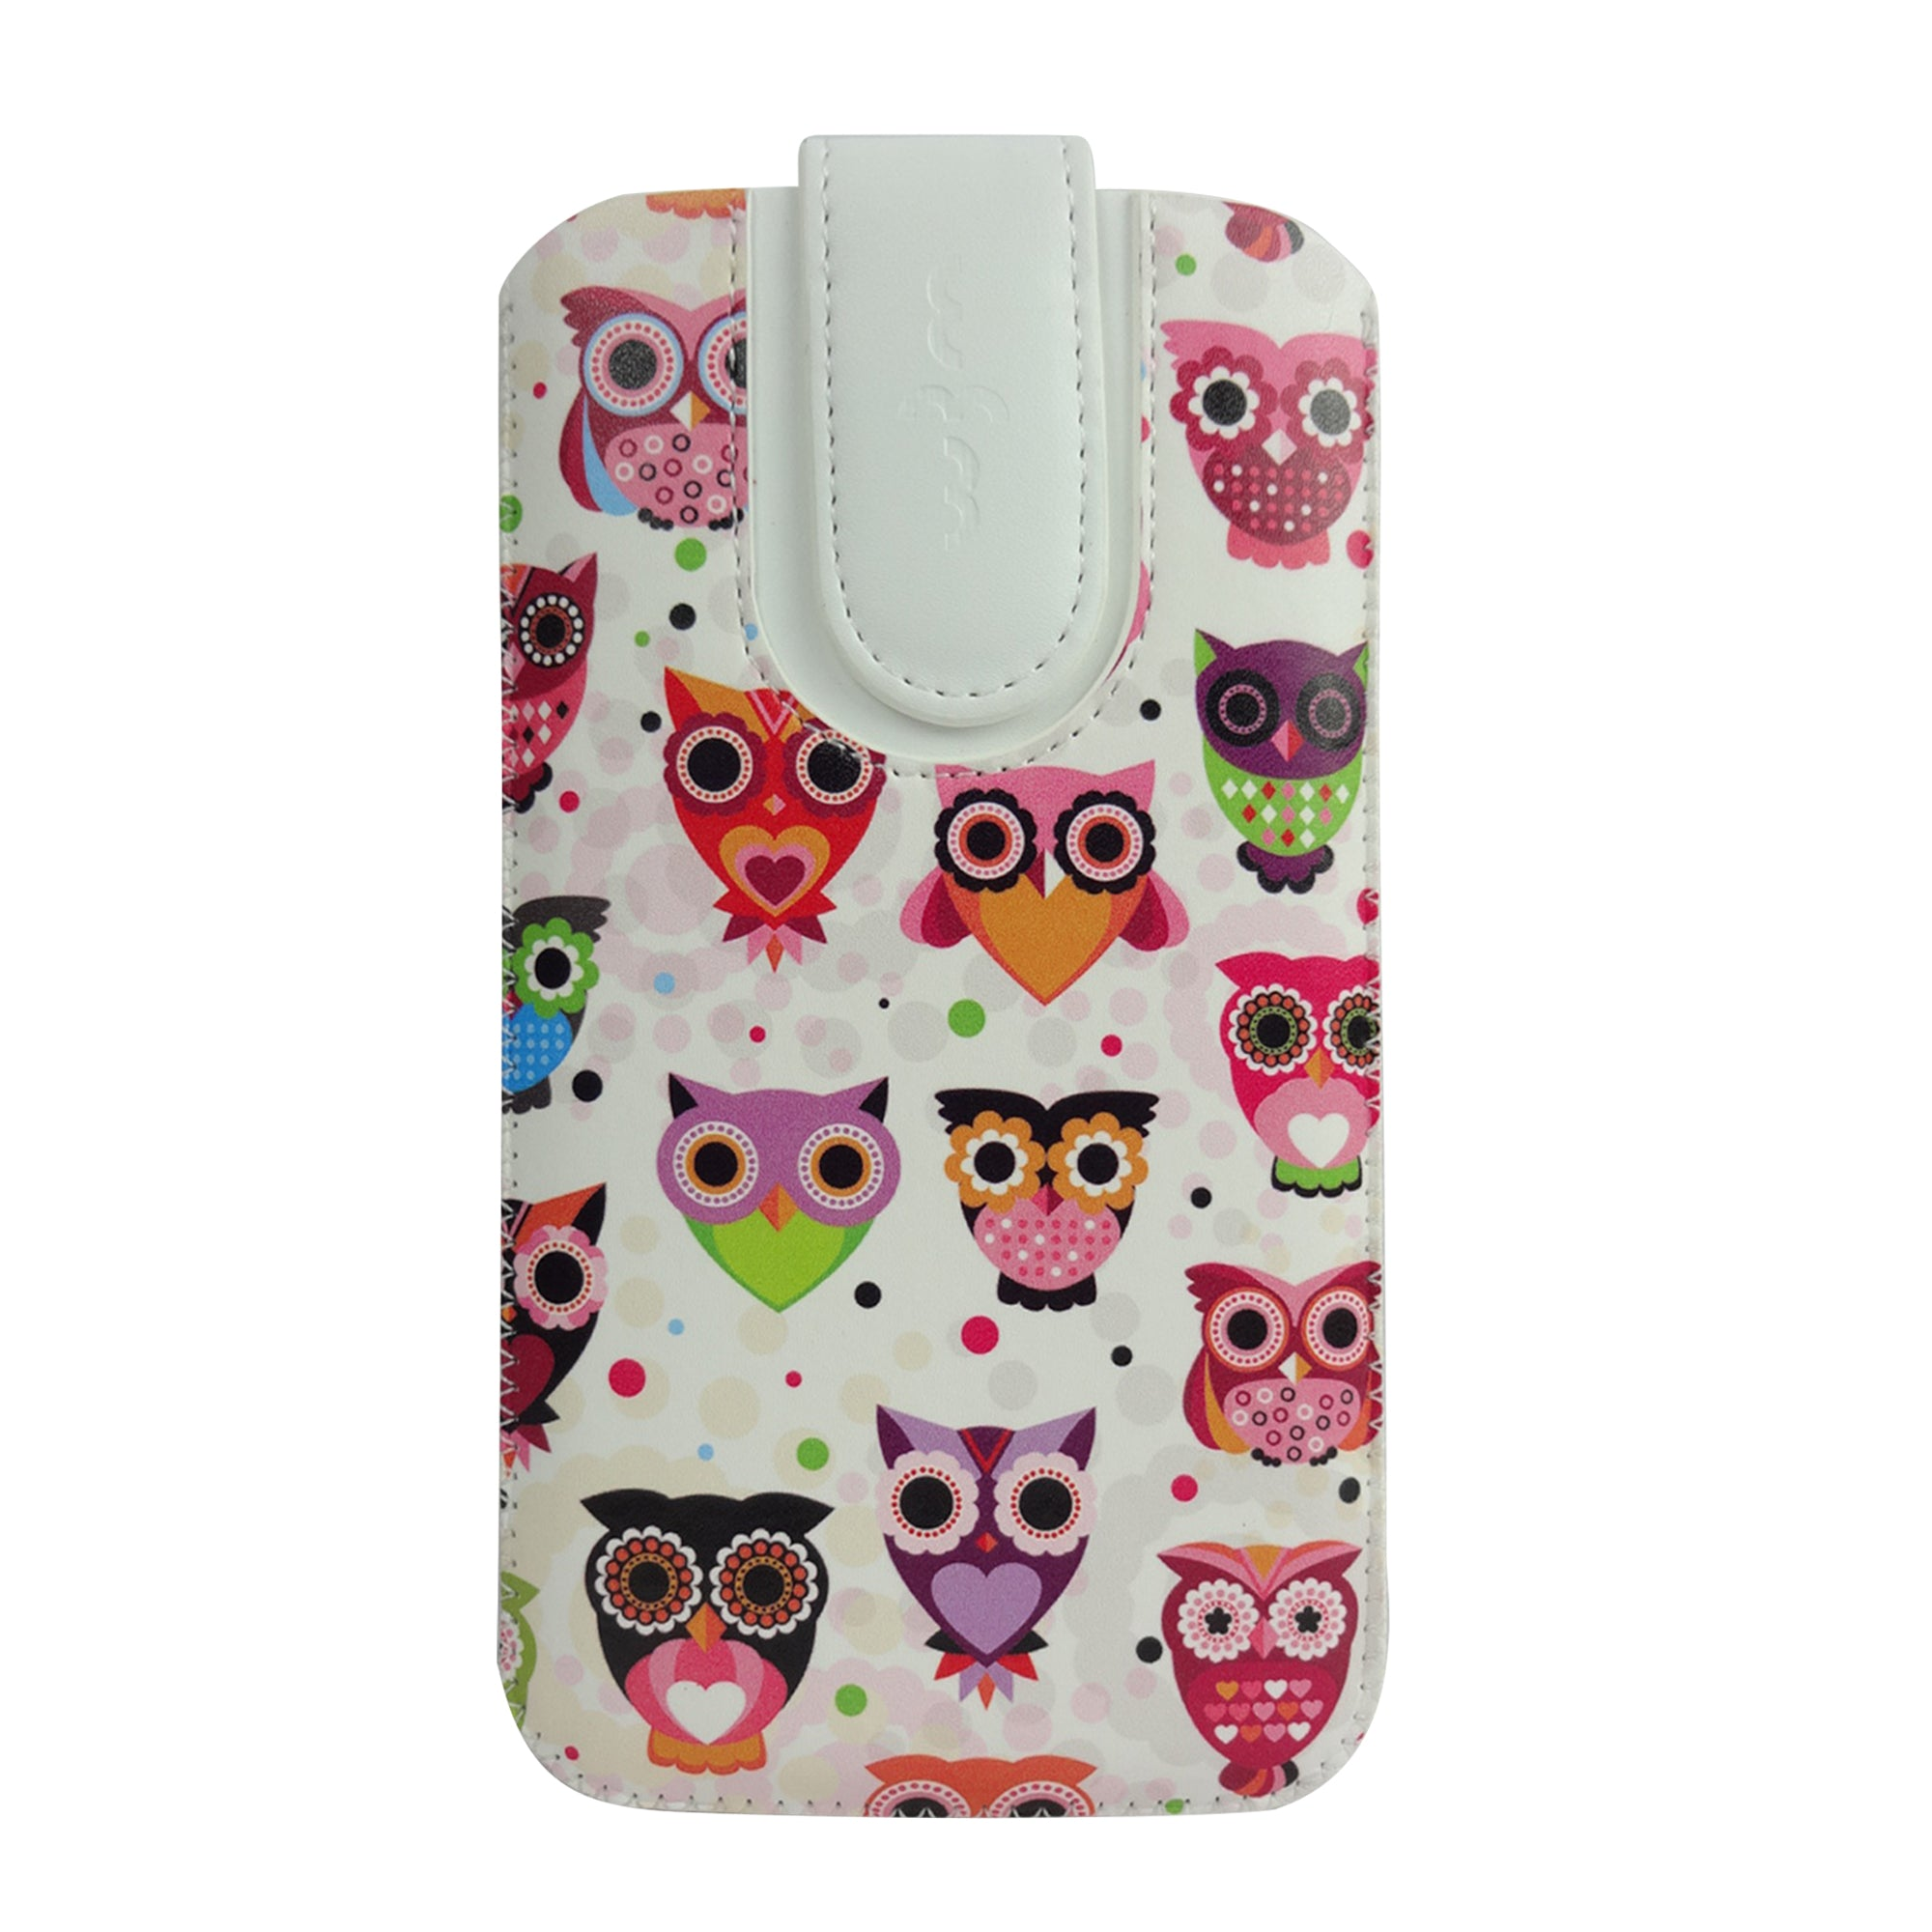 Universal Phone Pouch - Multi Owls